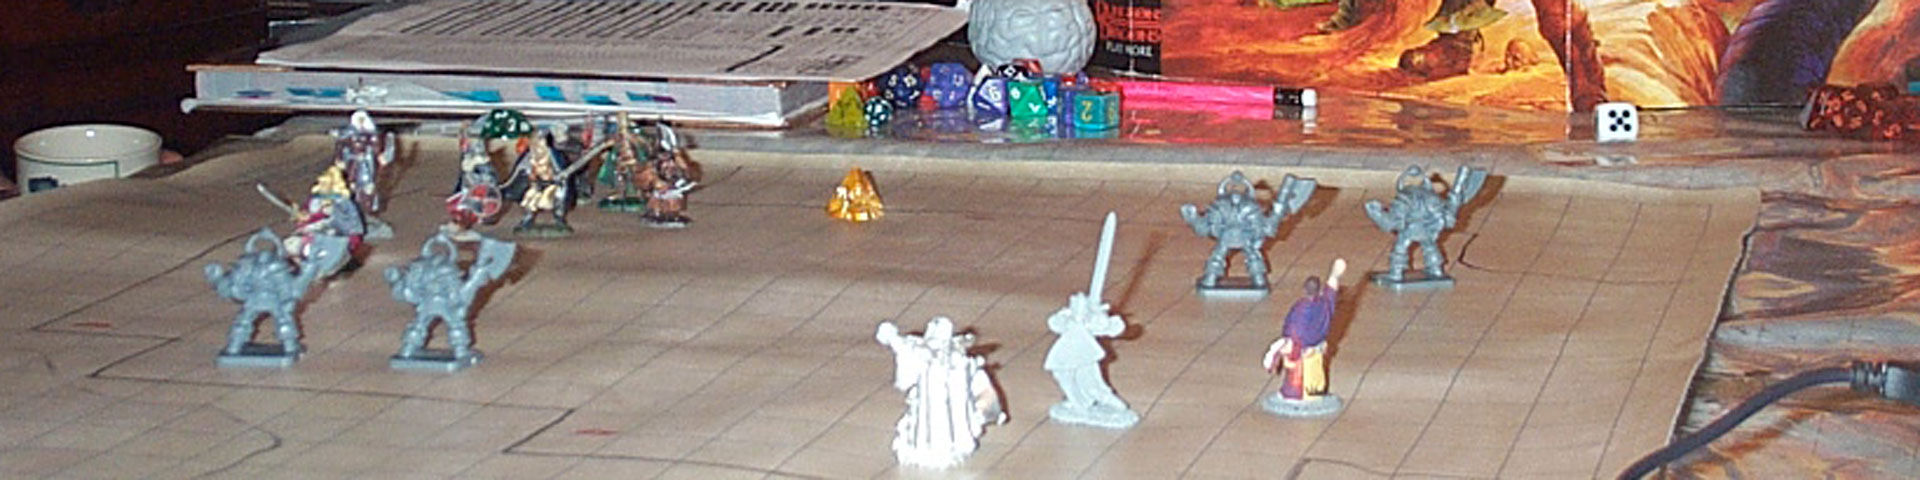 A close-up view of small fantasy figures on a gridded battle map.